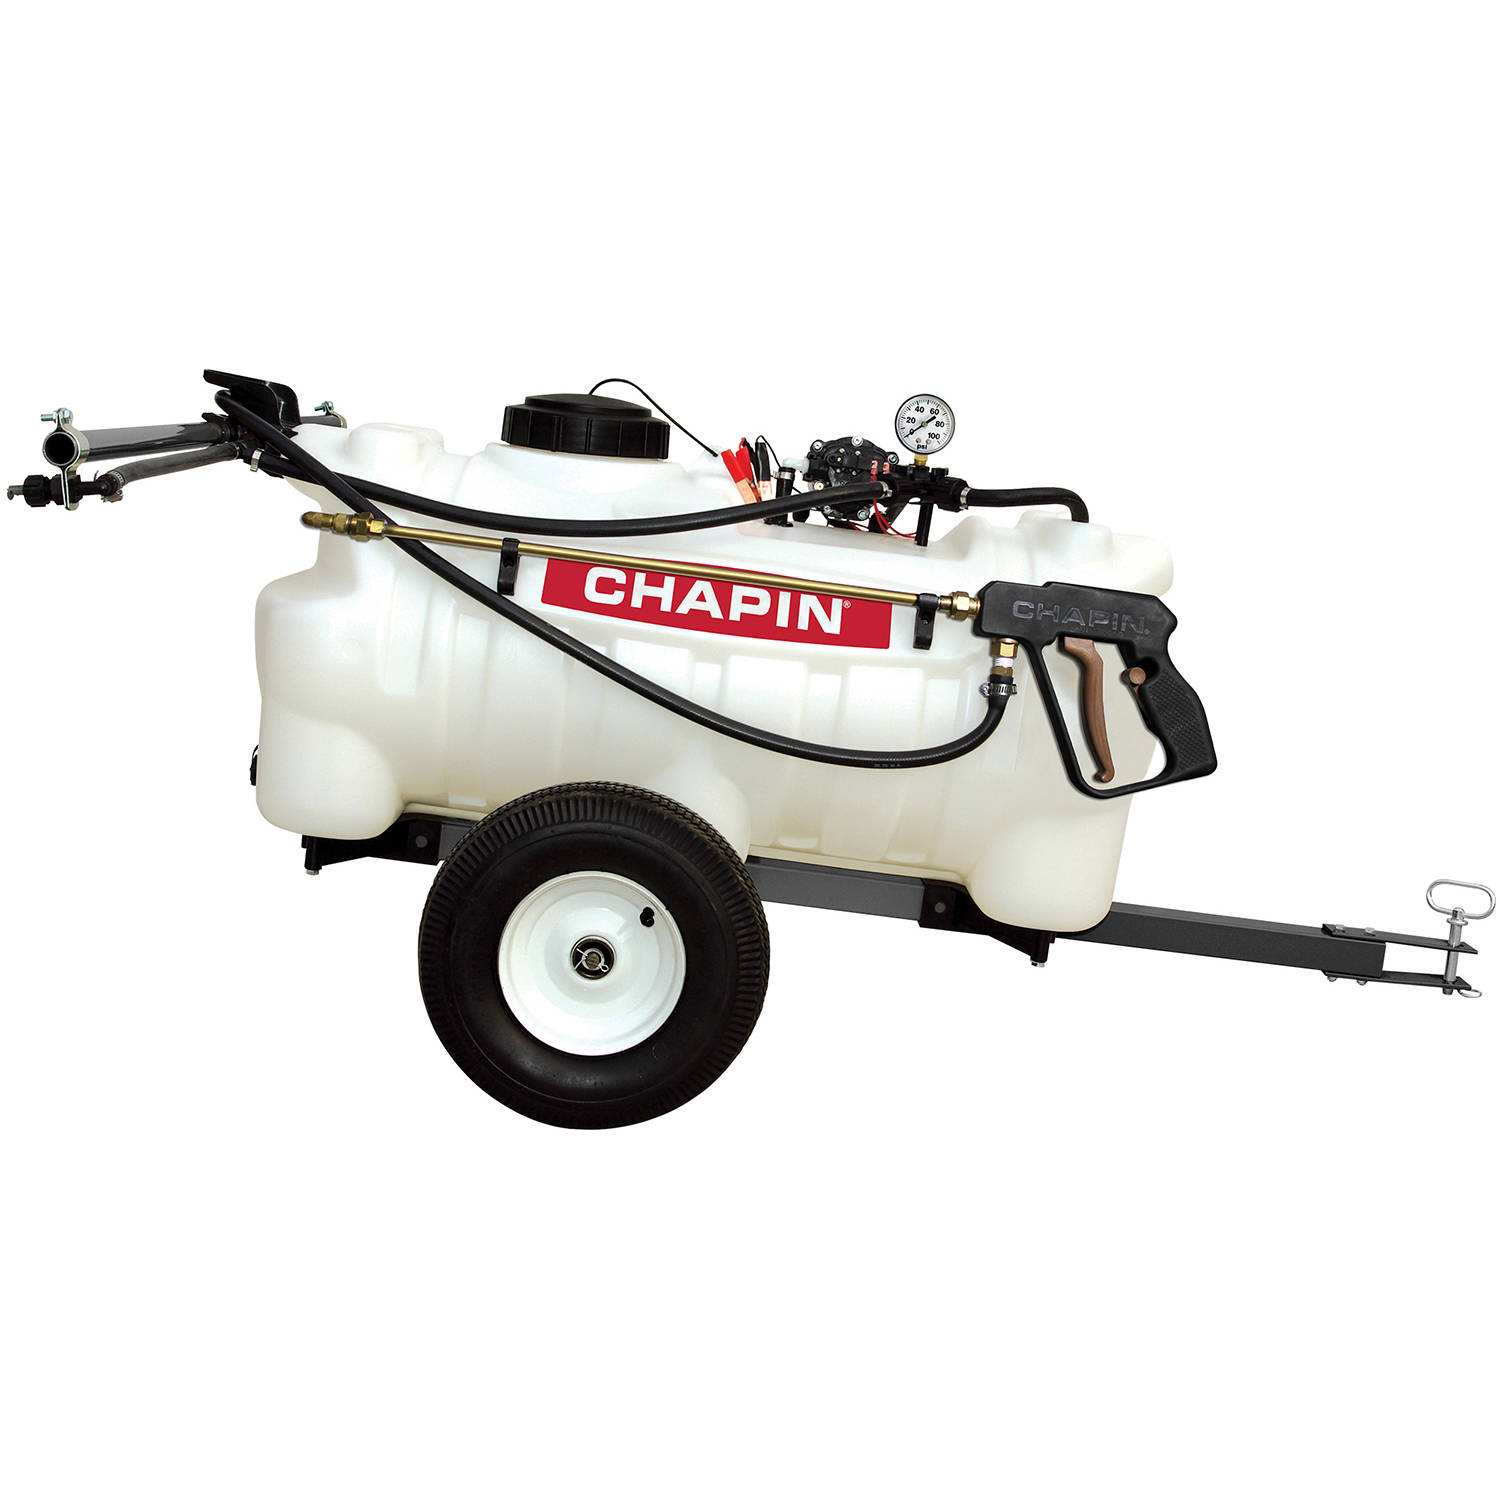 Chapin 97700 25-Gallon 12v EZ Tow Dripless Sprayer by Chapin